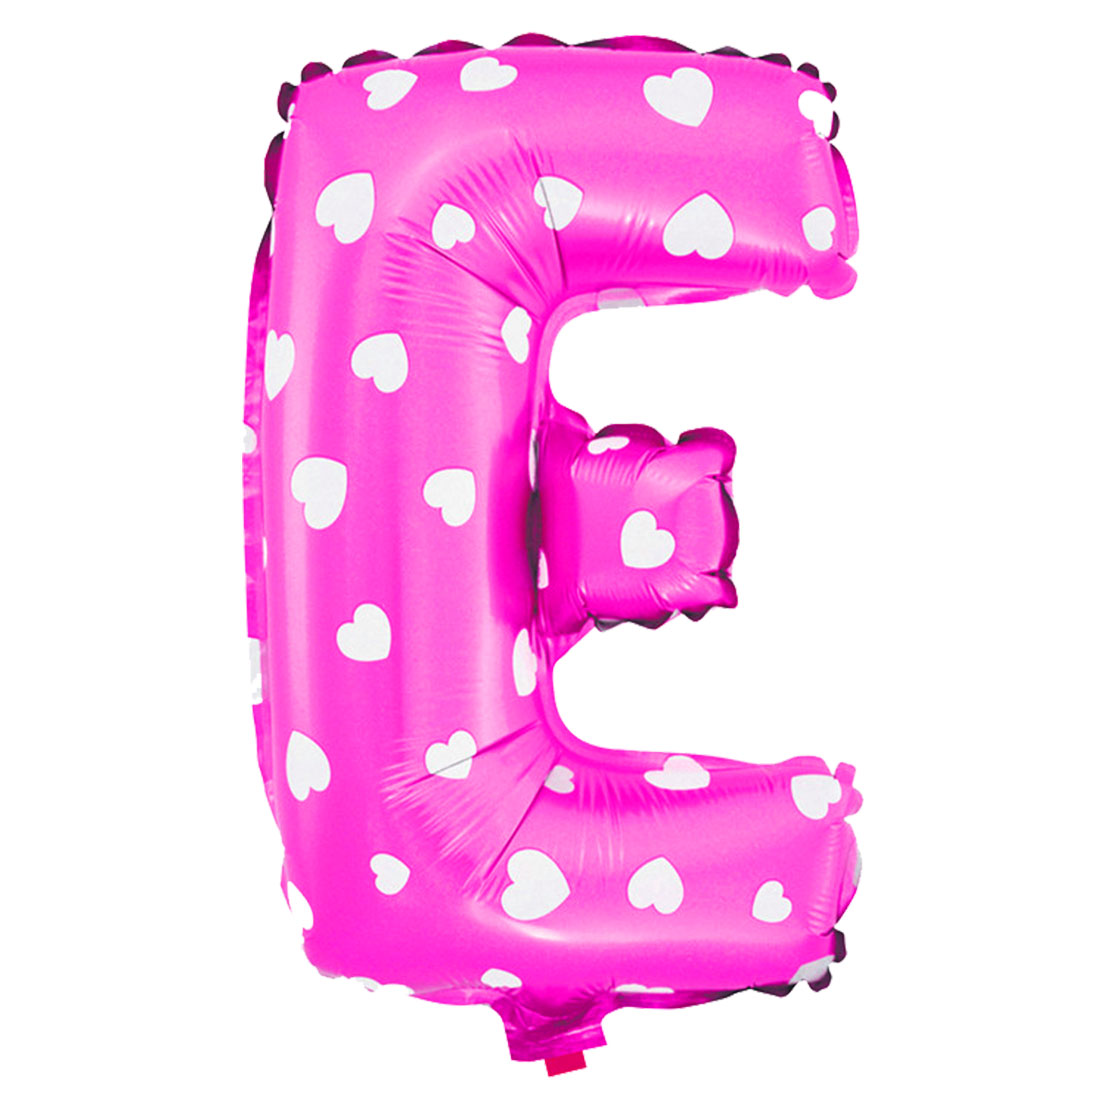 Unique Bargains Foil Letter E Heart Pattern Helium Balloon Birthday Wedding Decor Fuchsia 16""